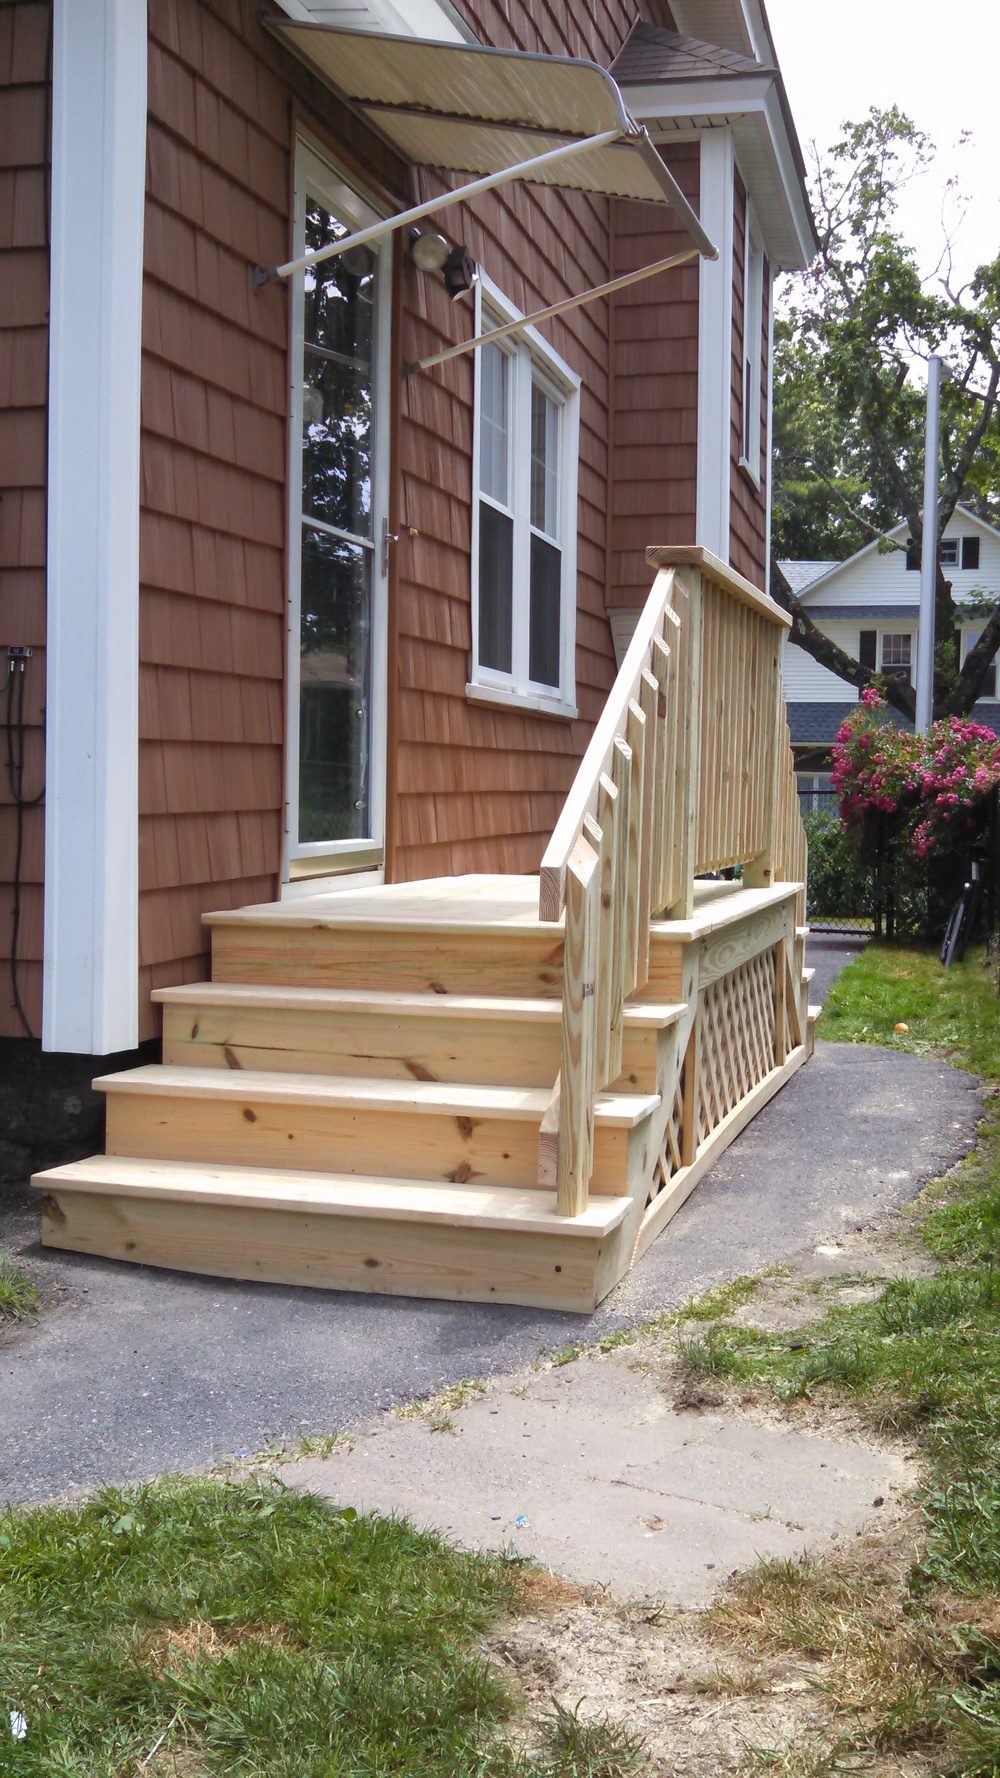 Deck built over existing stairs